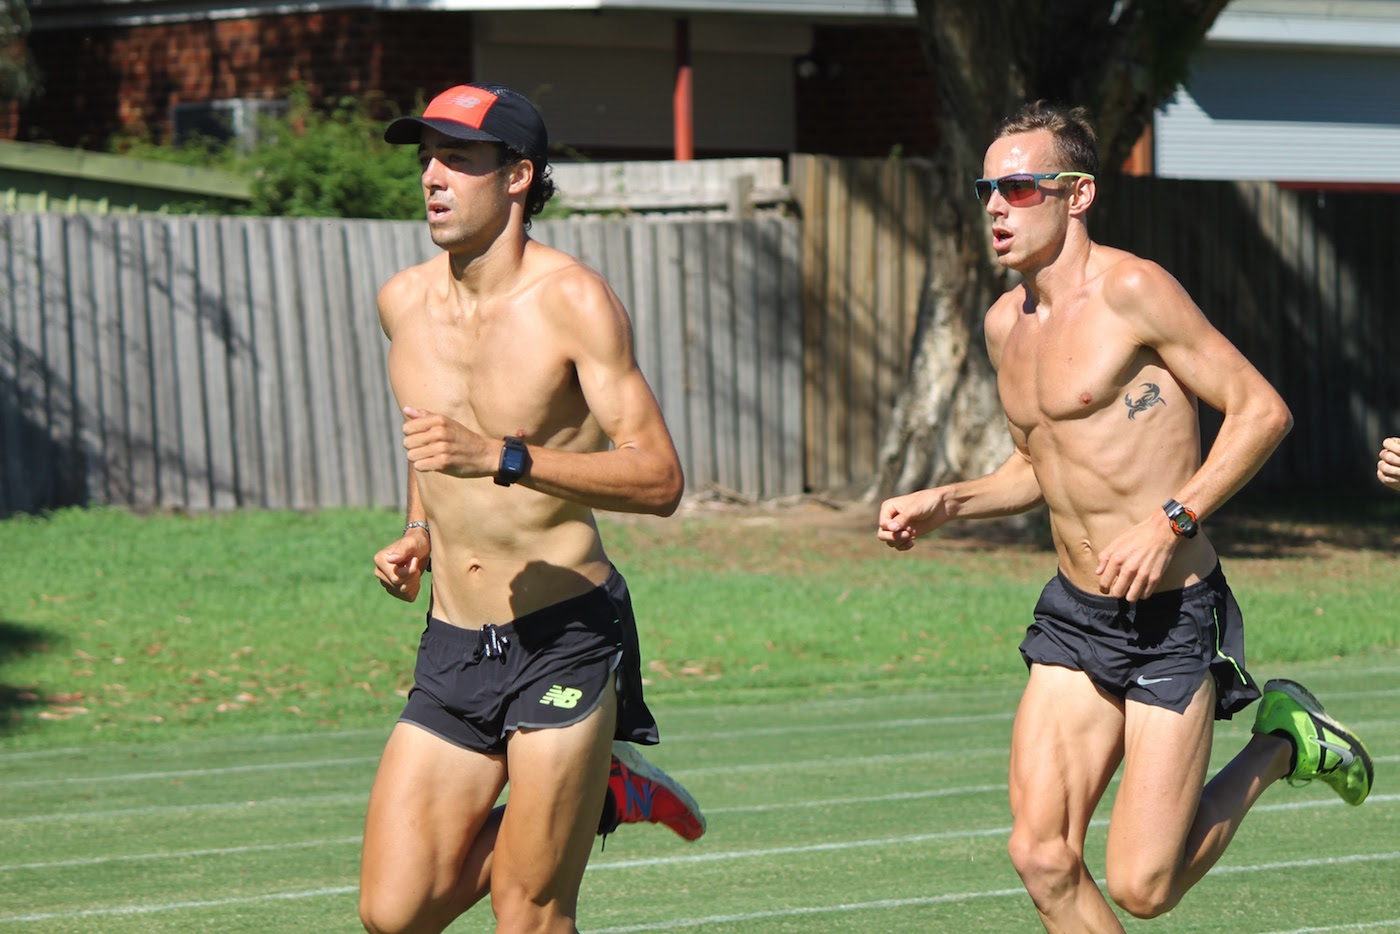 Luke Mathews and Ryan Gregson working hard at MTC training session in Melbourne earlier this year: Photo by RT